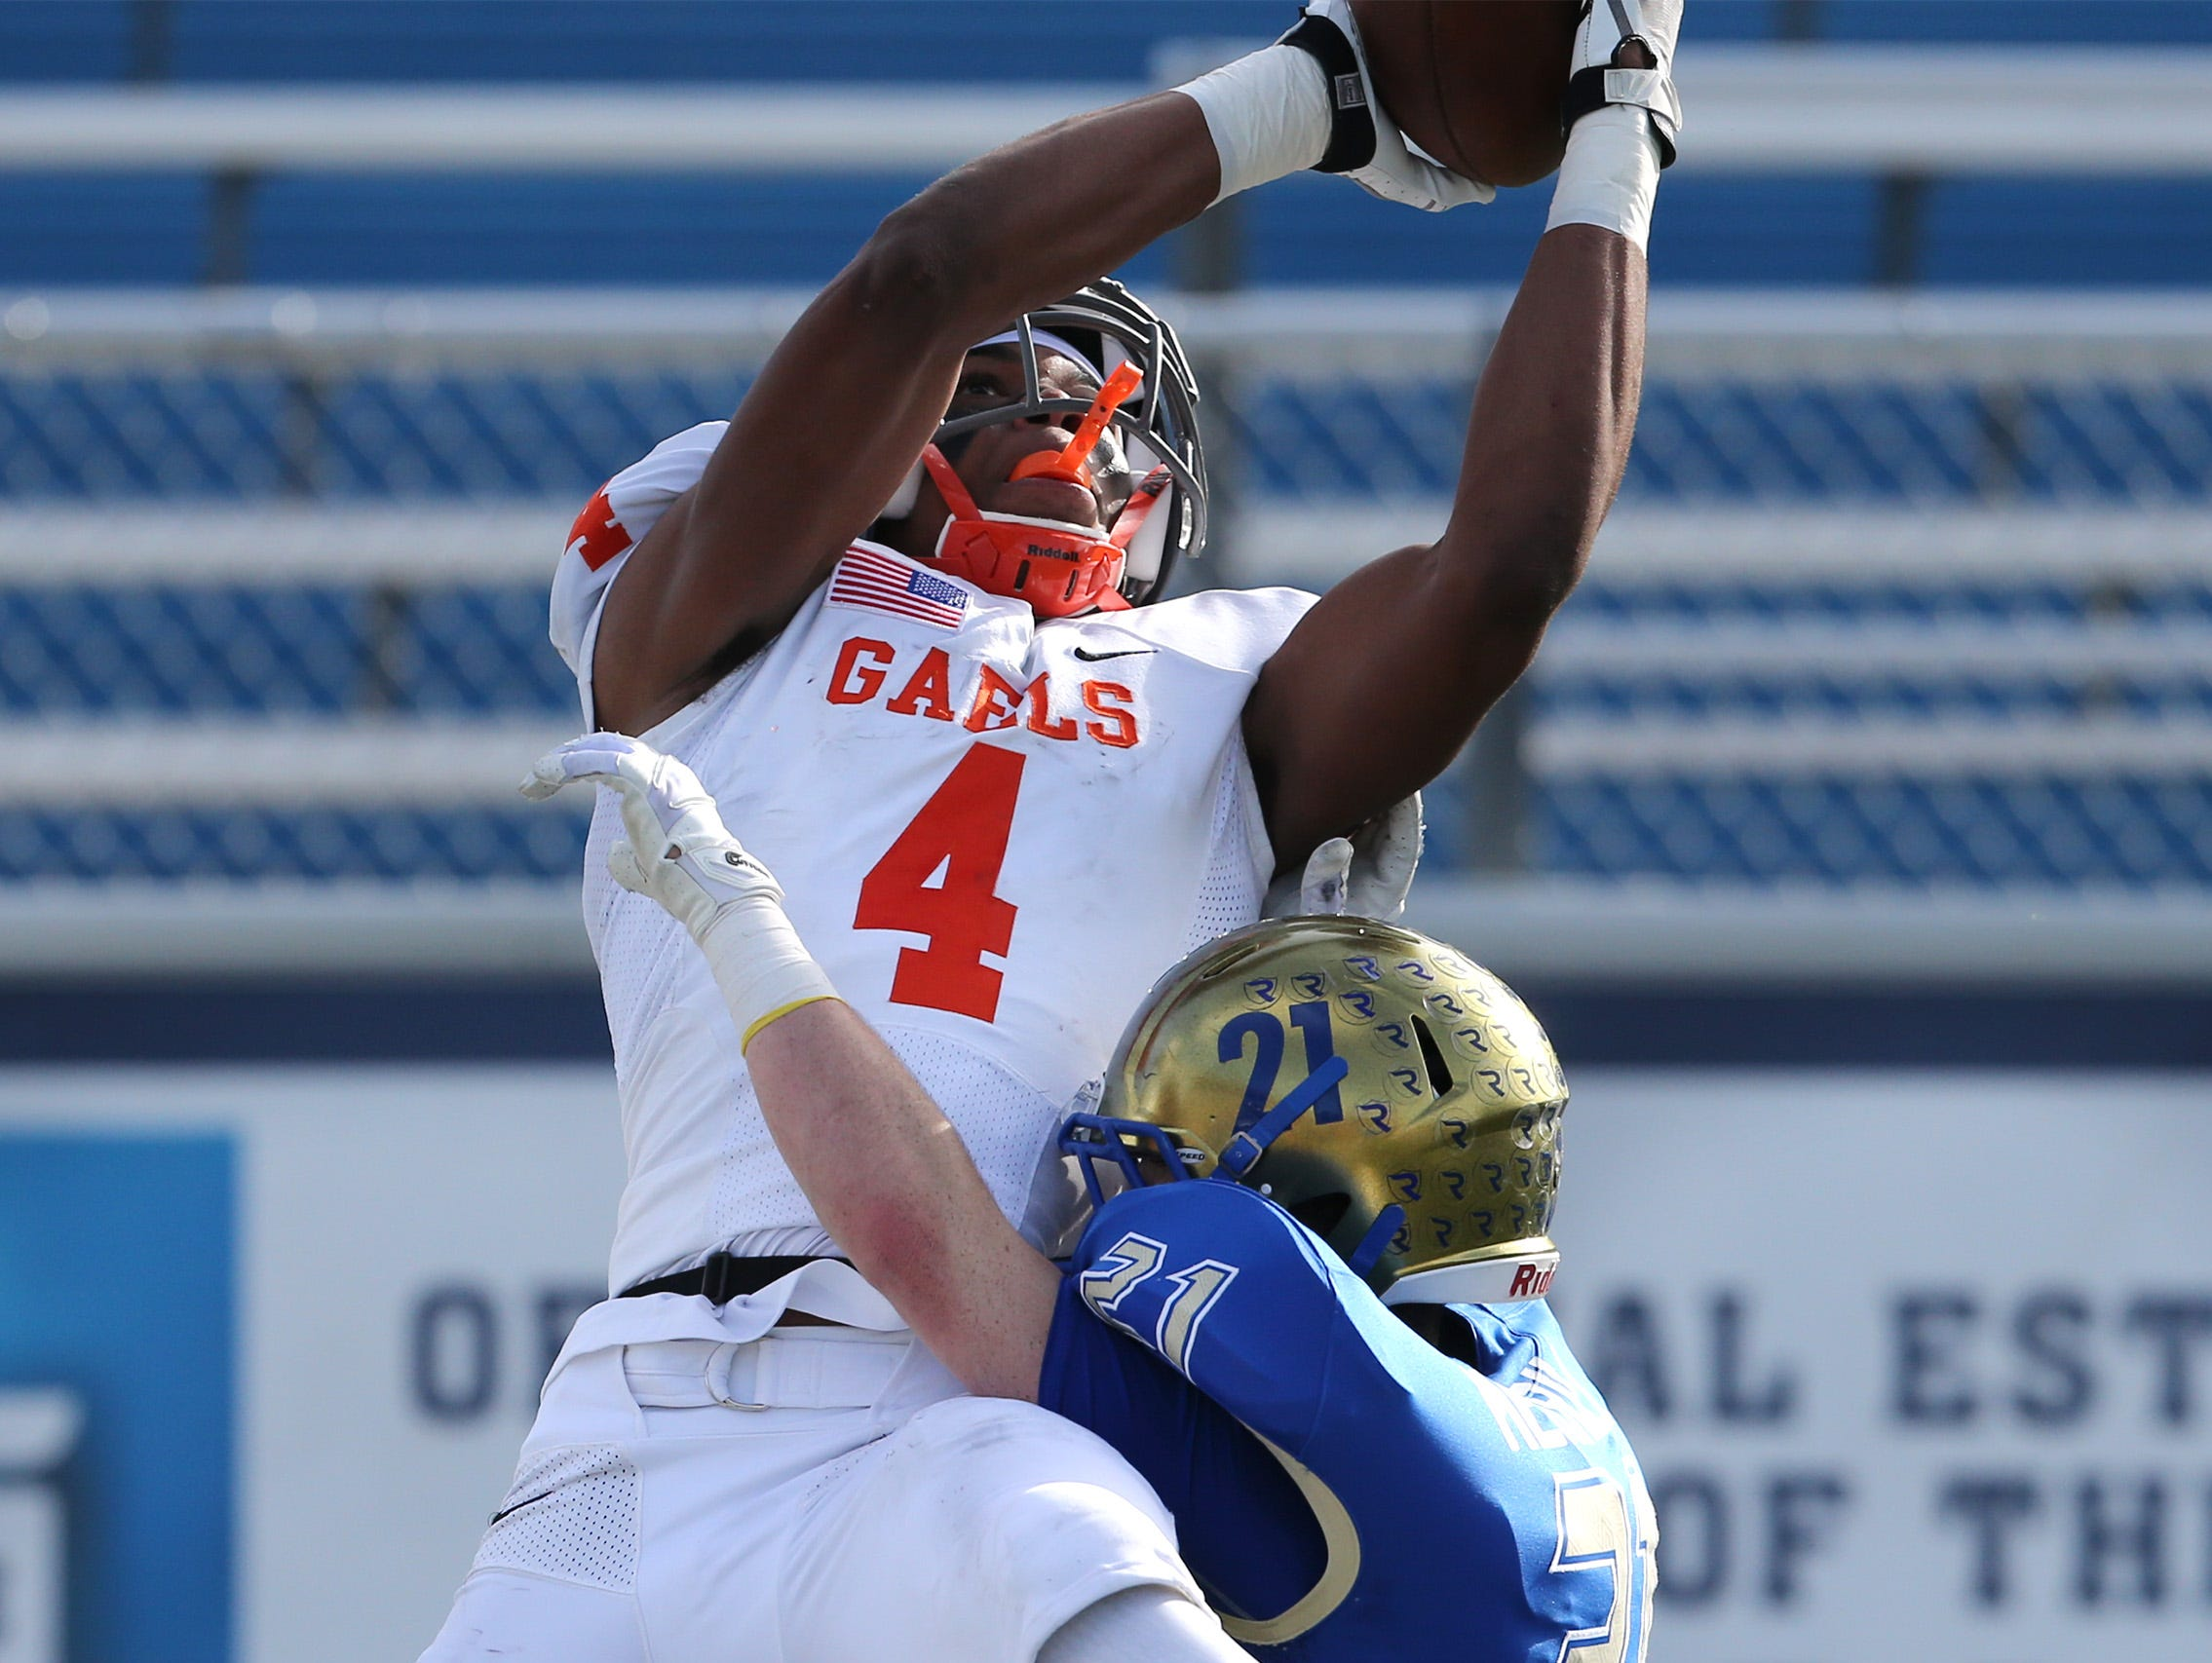 Bishop Gorman's Cedric Tillman goes up for a reception against Reed's Chase Merrill during the first half of the NIAA 4A state championship football game in Reno, Nev., on Saturday, Dec. 2, 2017.